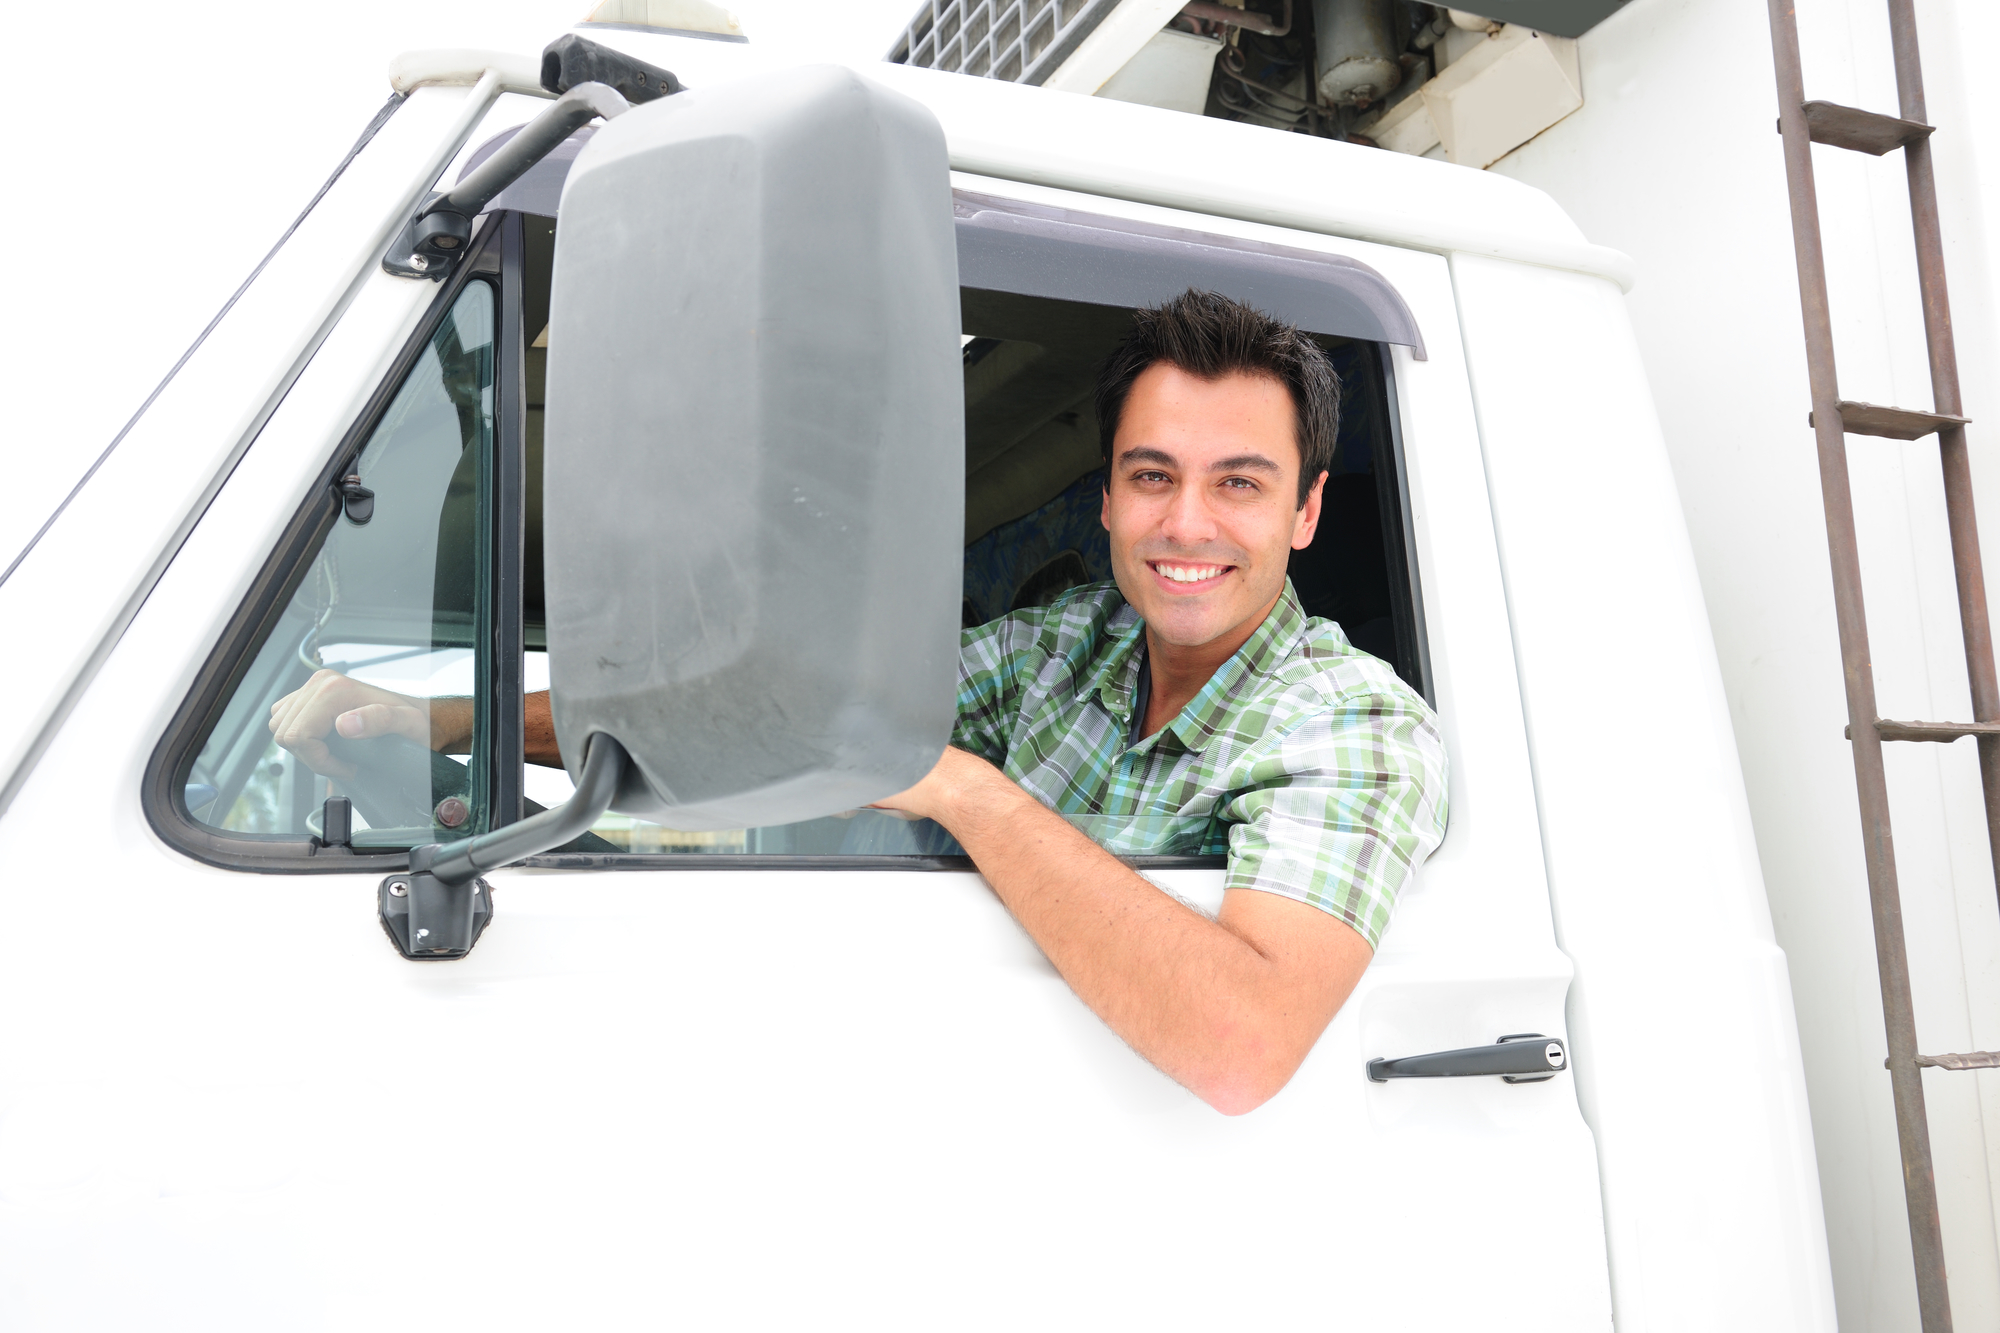 Owner operator sitting in truck